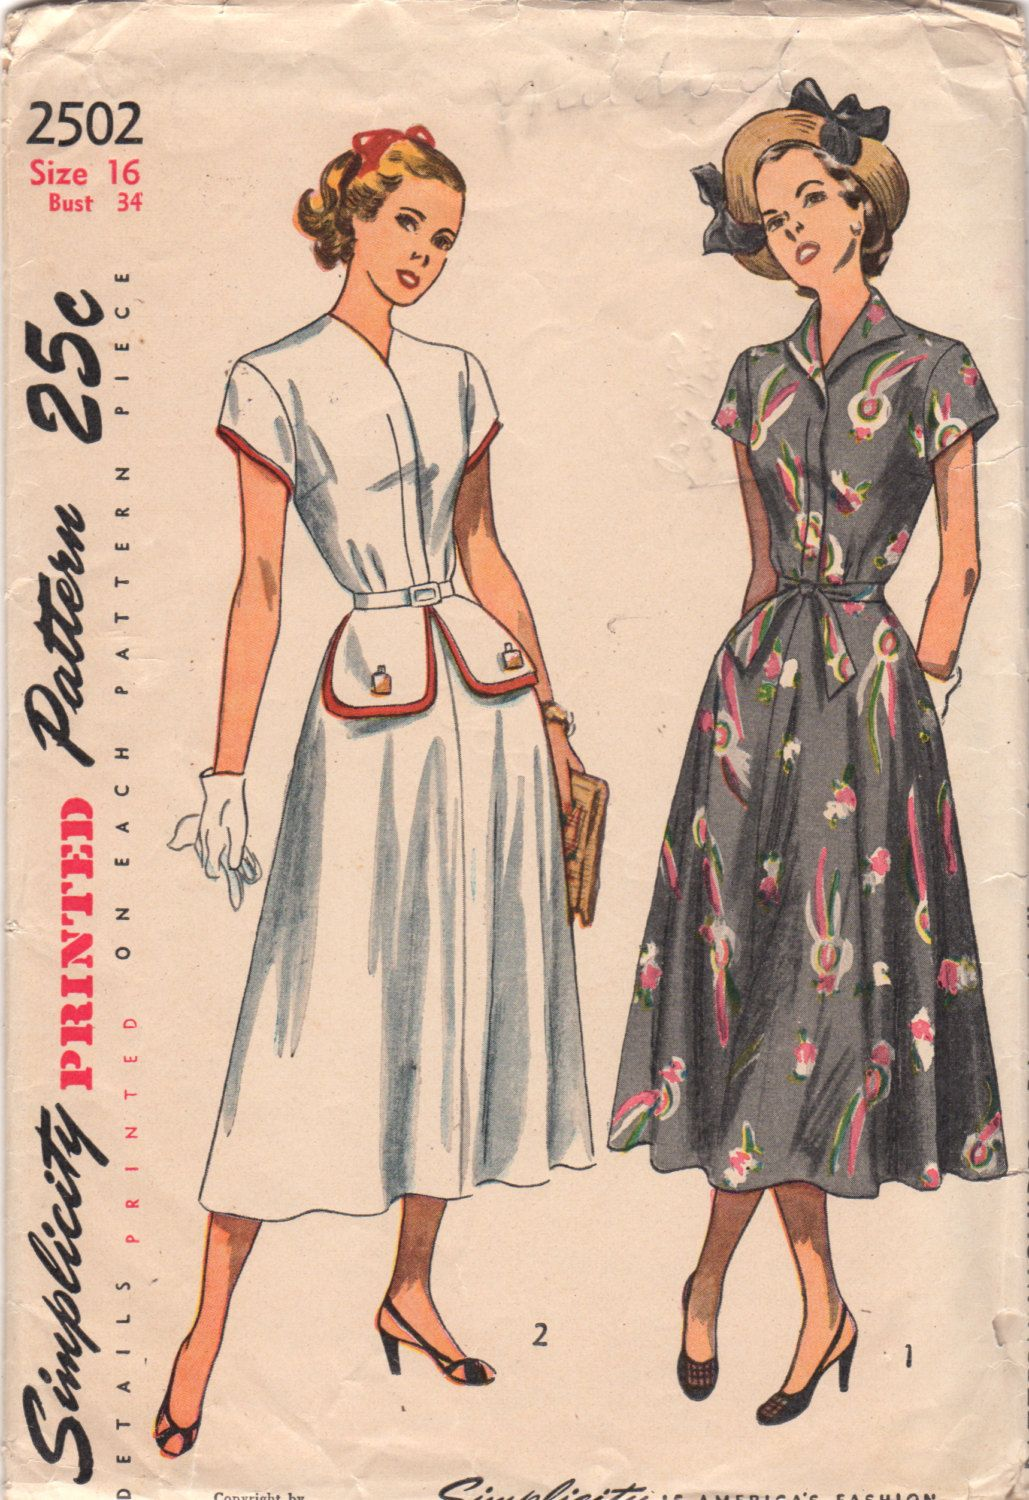 Sew Something Vintage 1940s Fashion: 1940s Simplicity 2502 Misses Flared Skirt DRESS Pattern